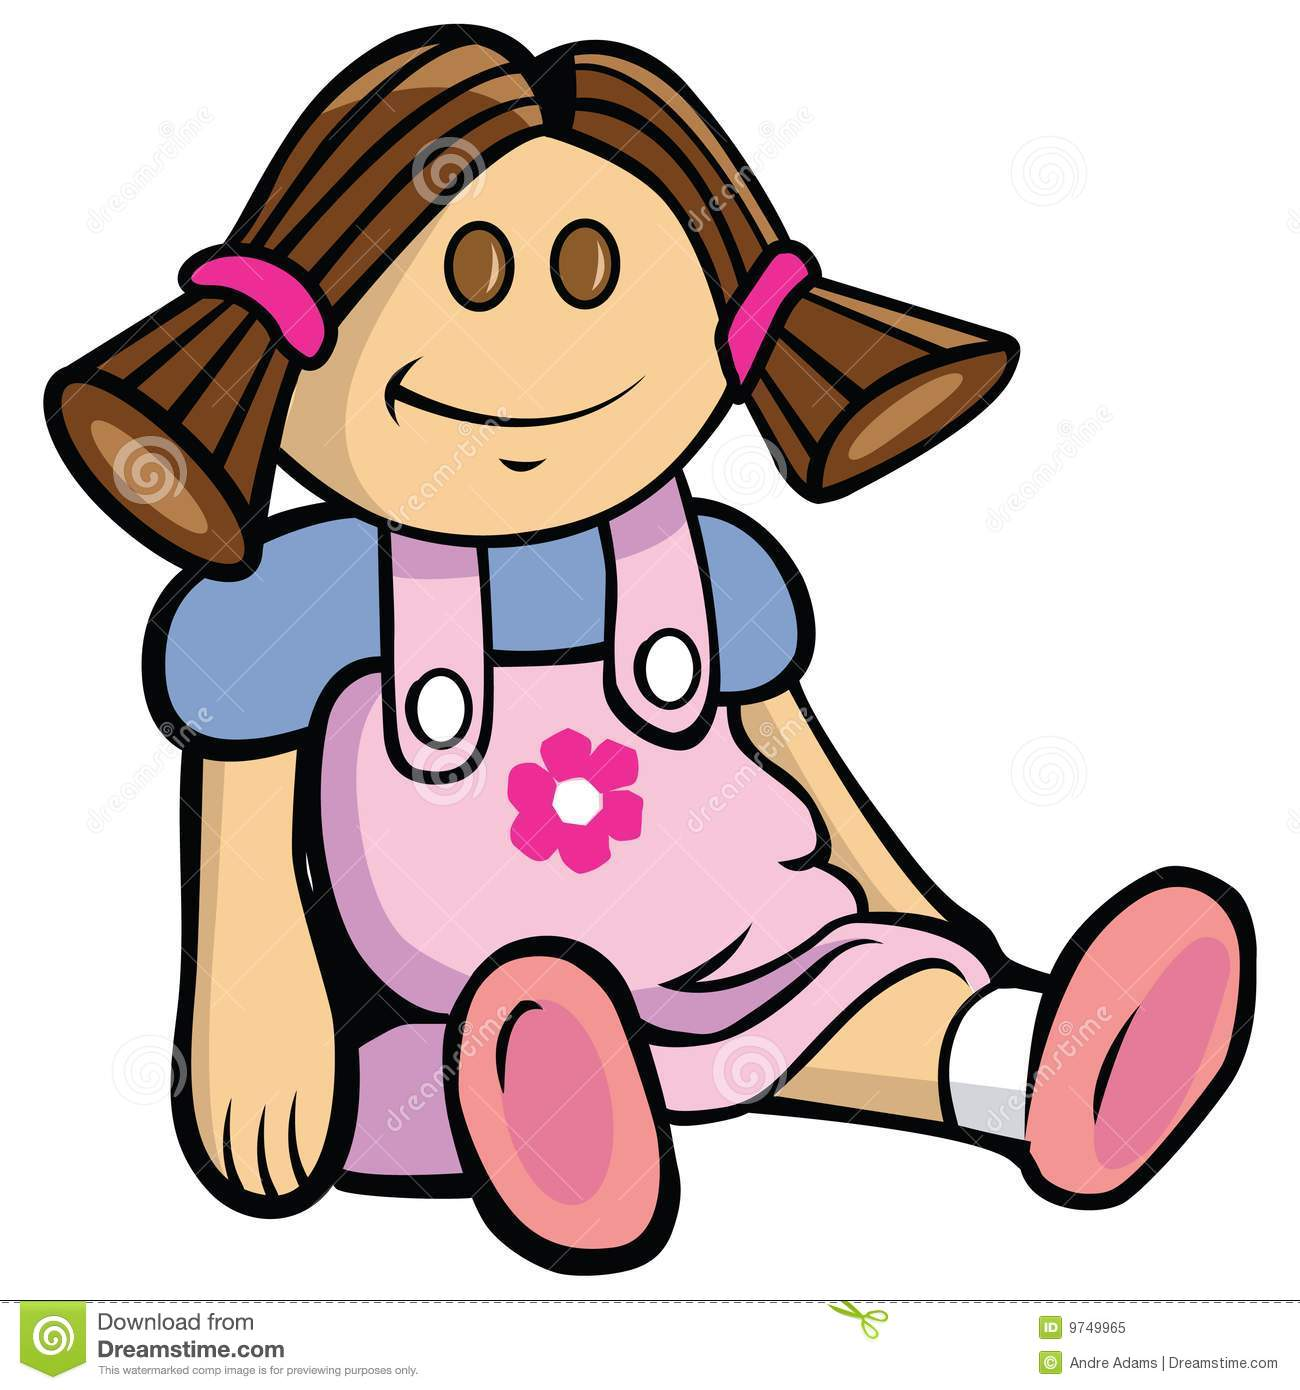 Free clipart of dolls. Doll download best on